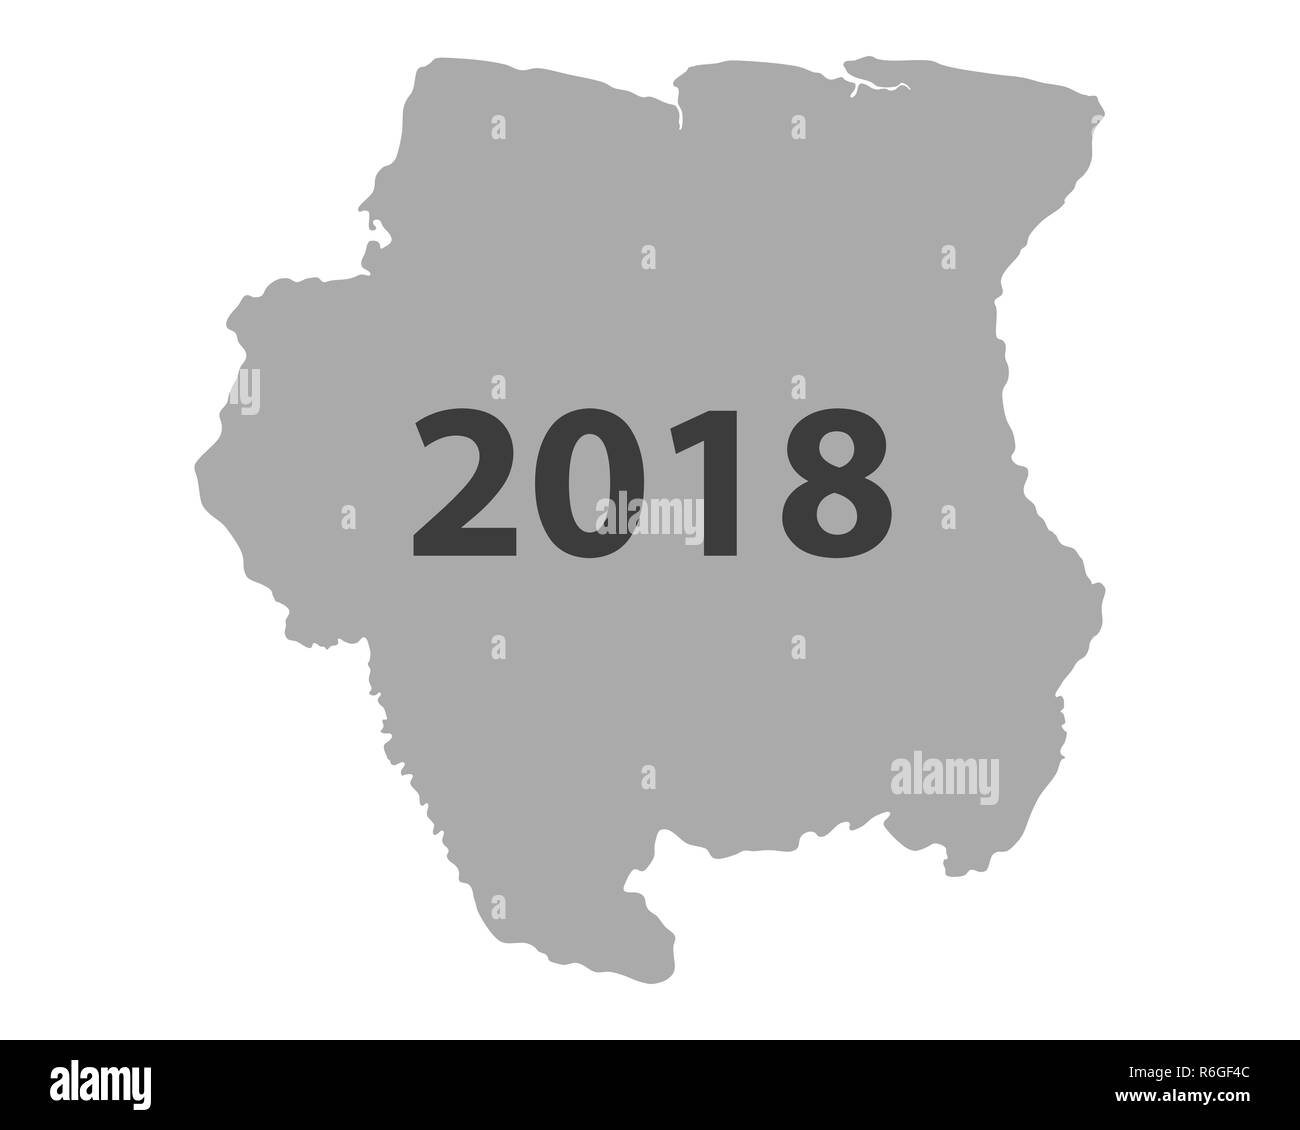 map of suriname 2018 - Stock Image